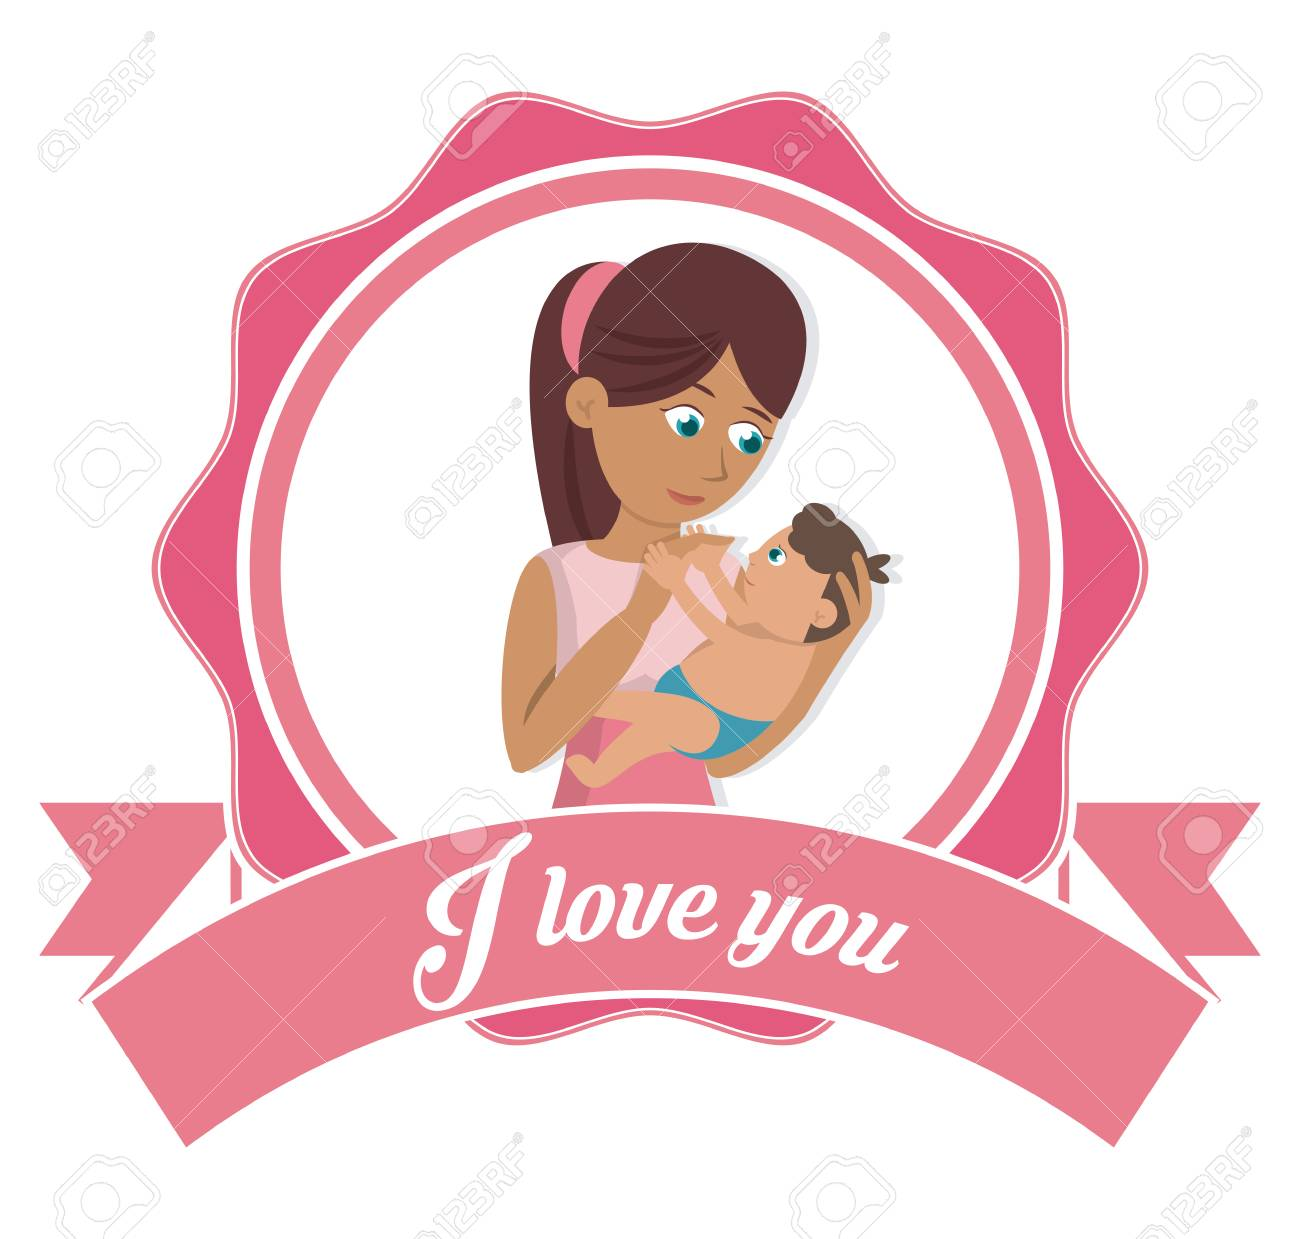 I love you mom card mother and baby together » Clipart Station.